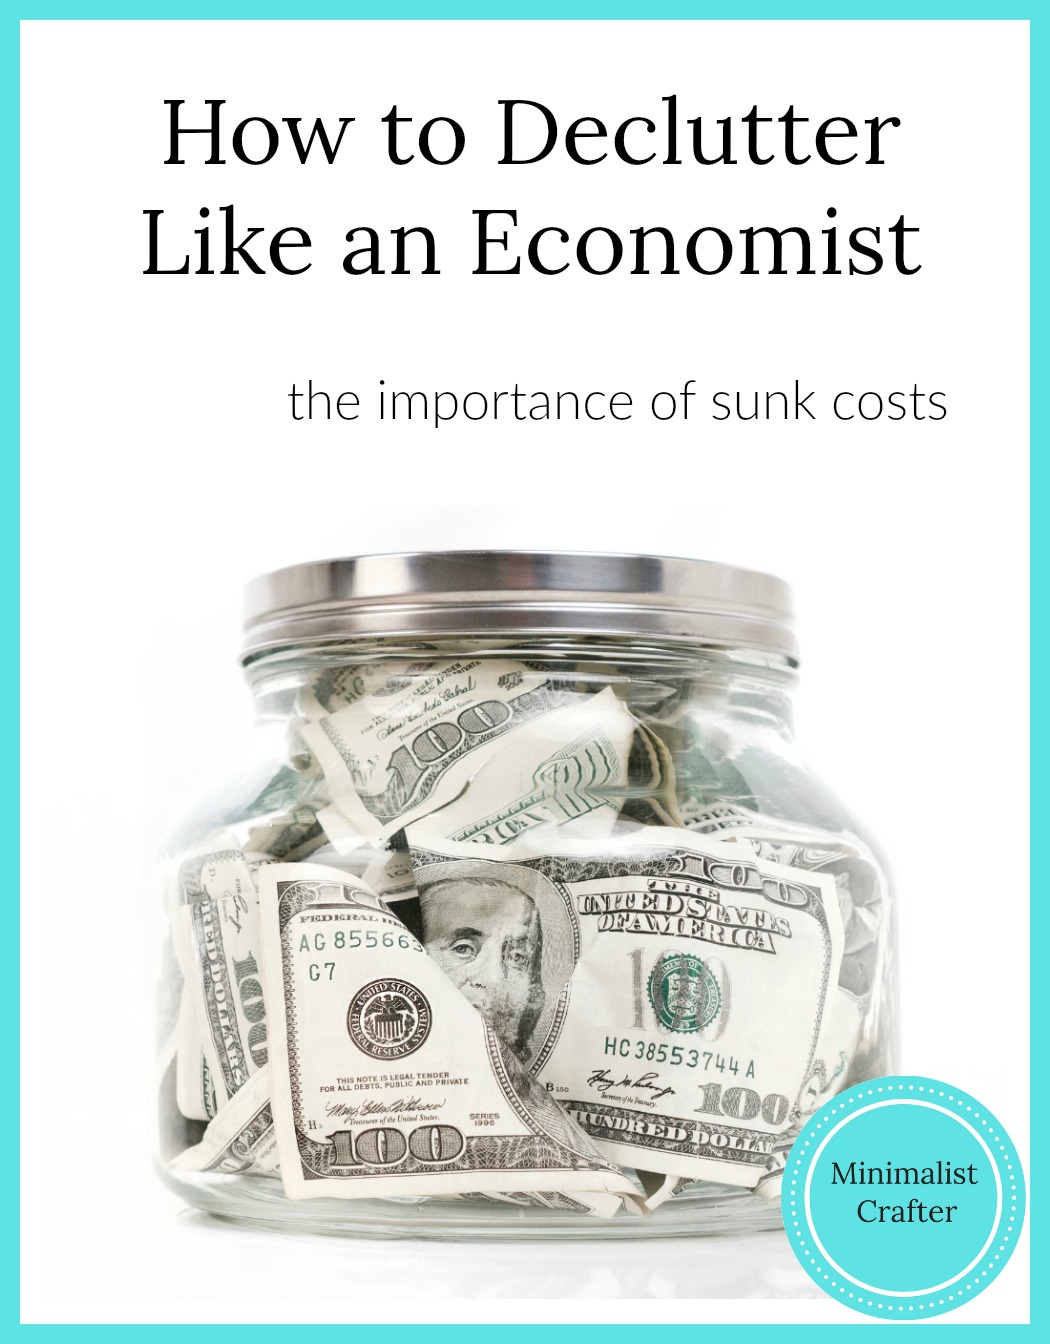 sunk costs and how to declutter like an economist.